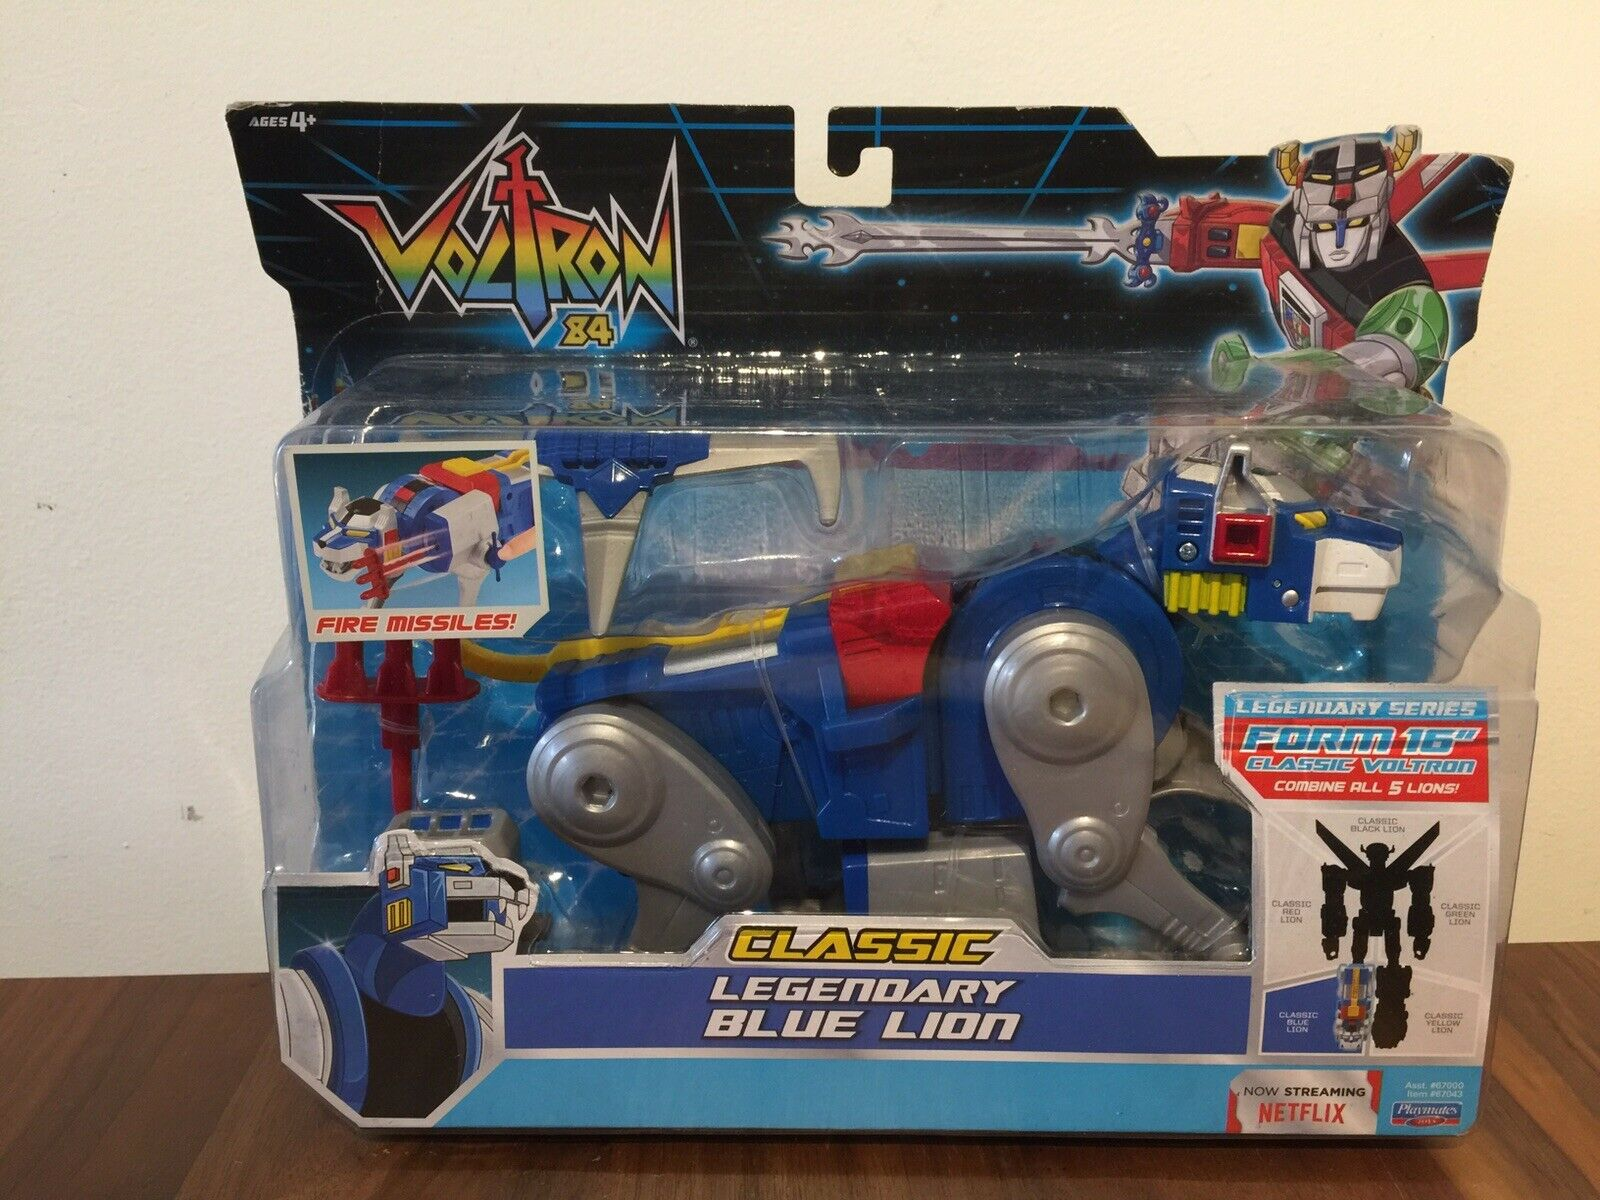 Voltron 84 Classic  Legendary bluee bluee bluee Lion (Brand New Unopened) d4f353